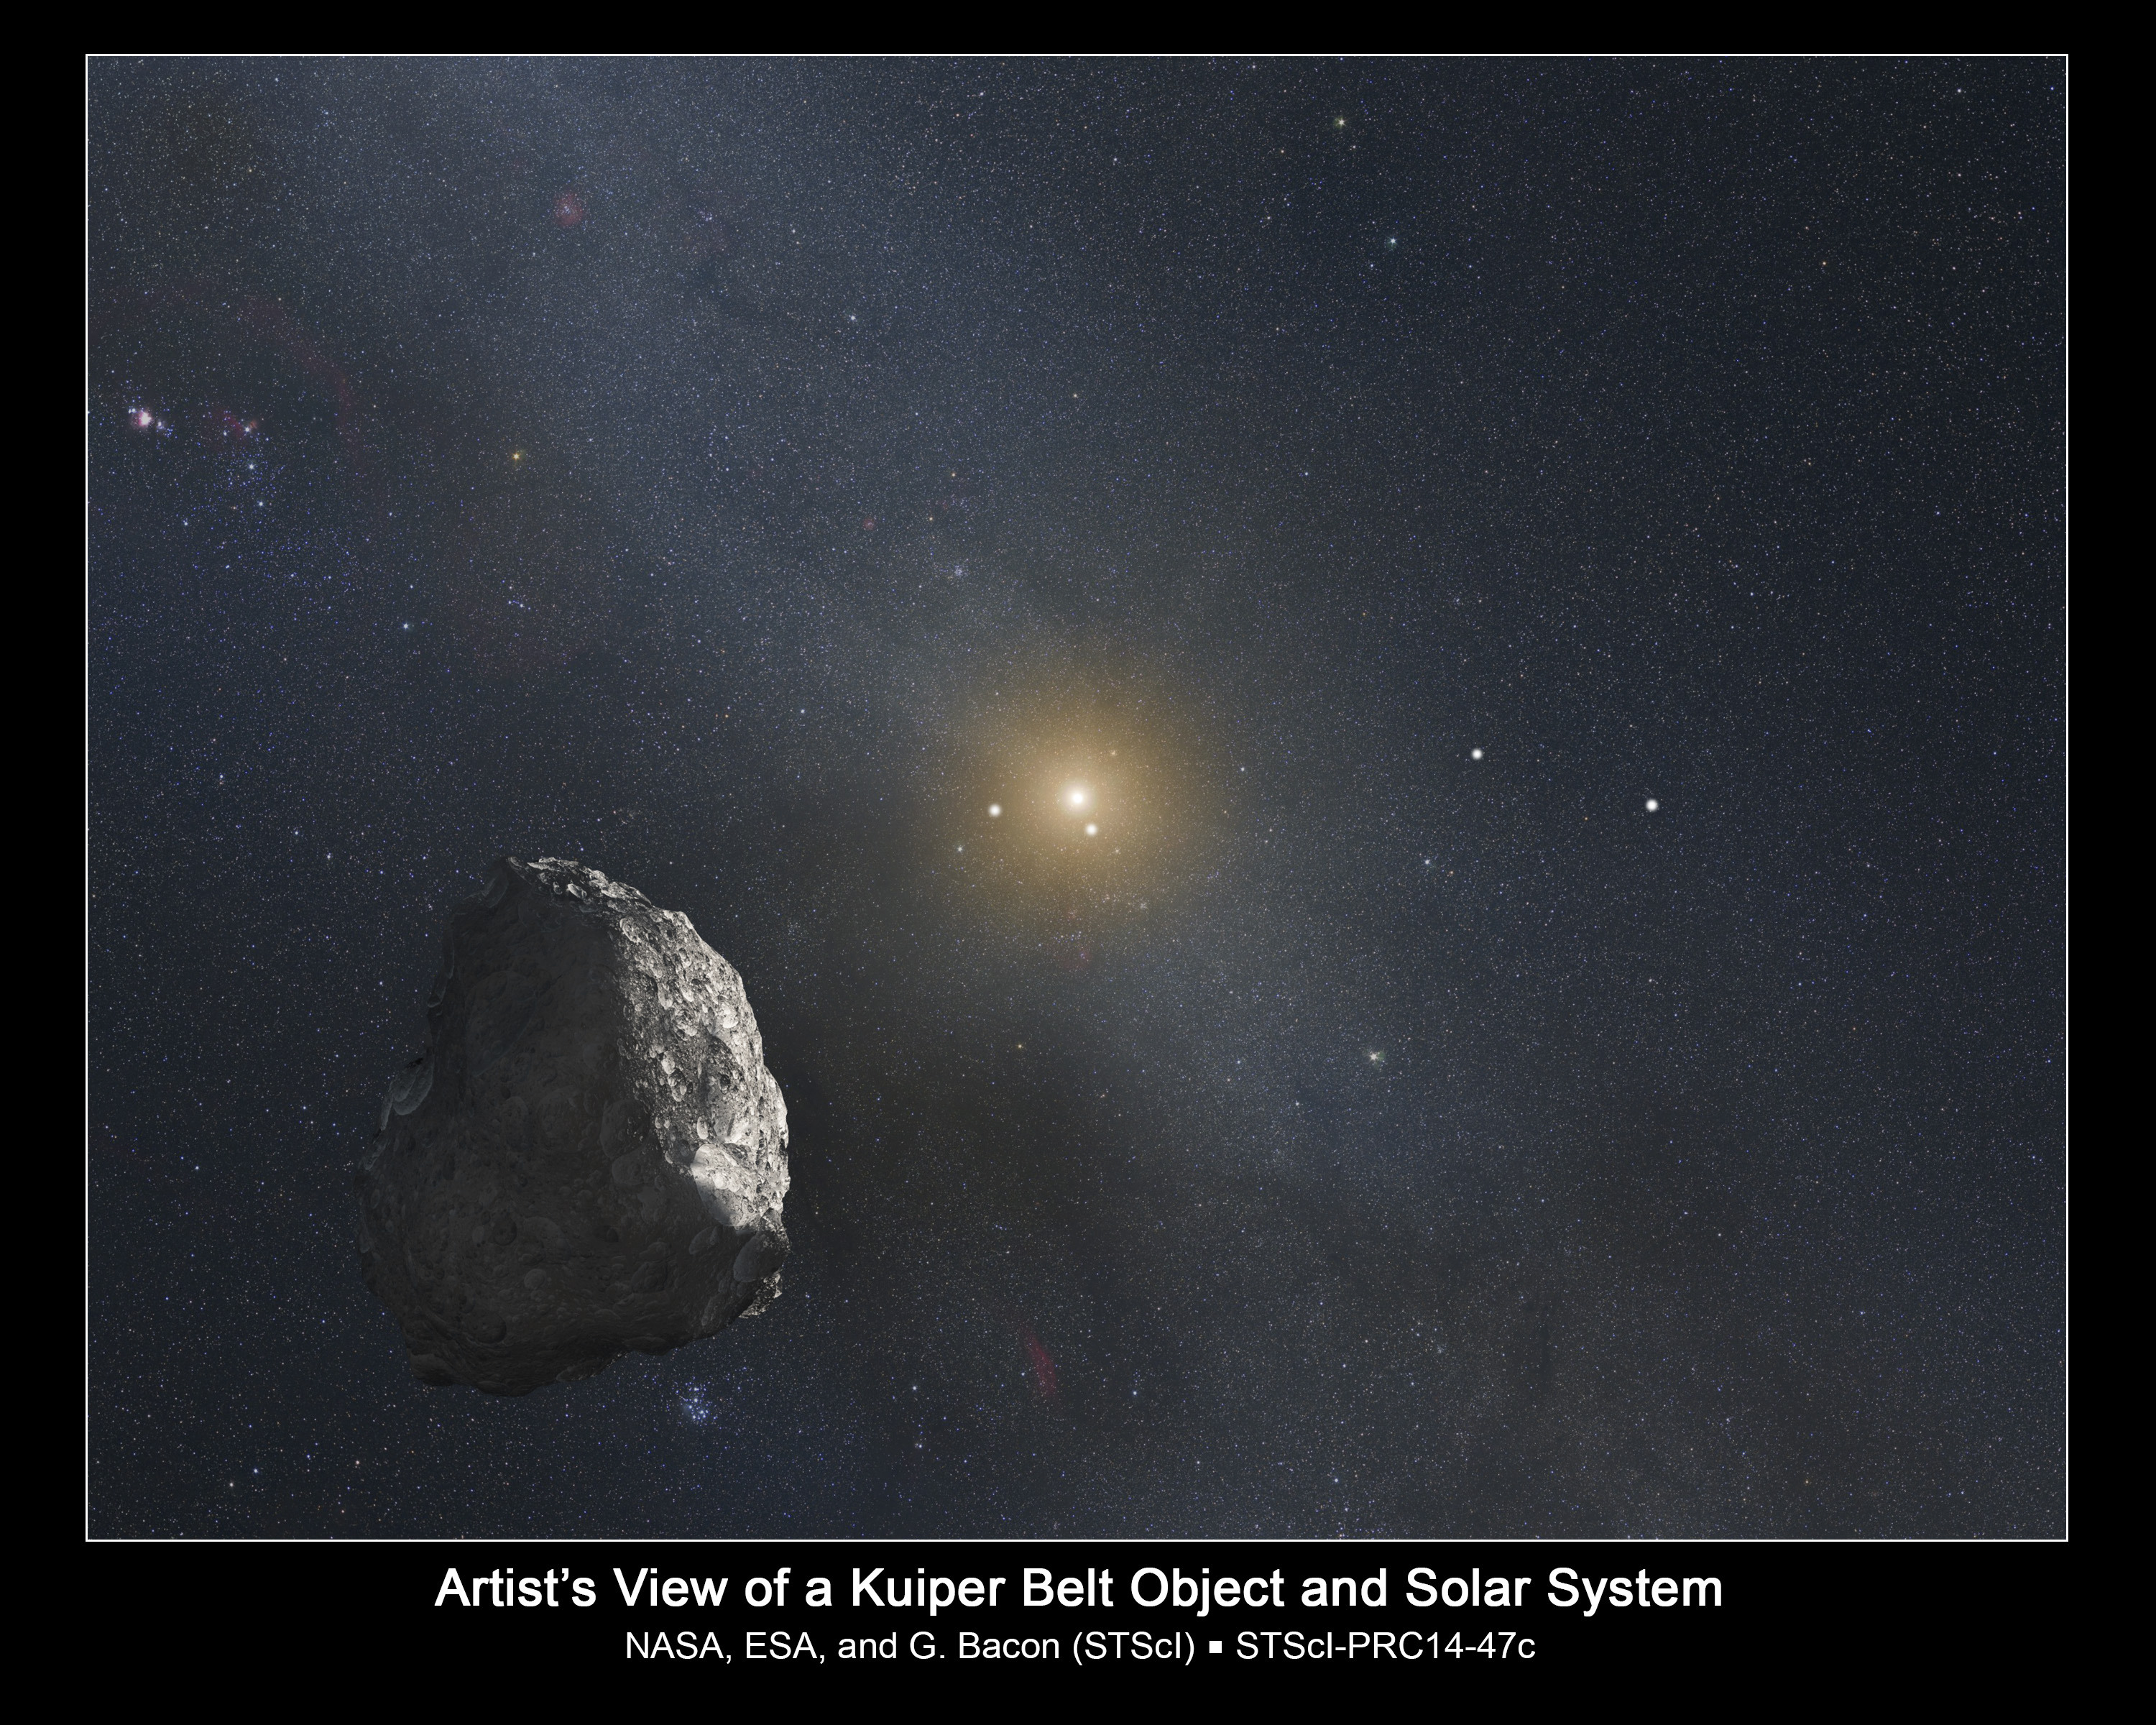 nasa s hubble telescope finds potential kuiper belt targets for new